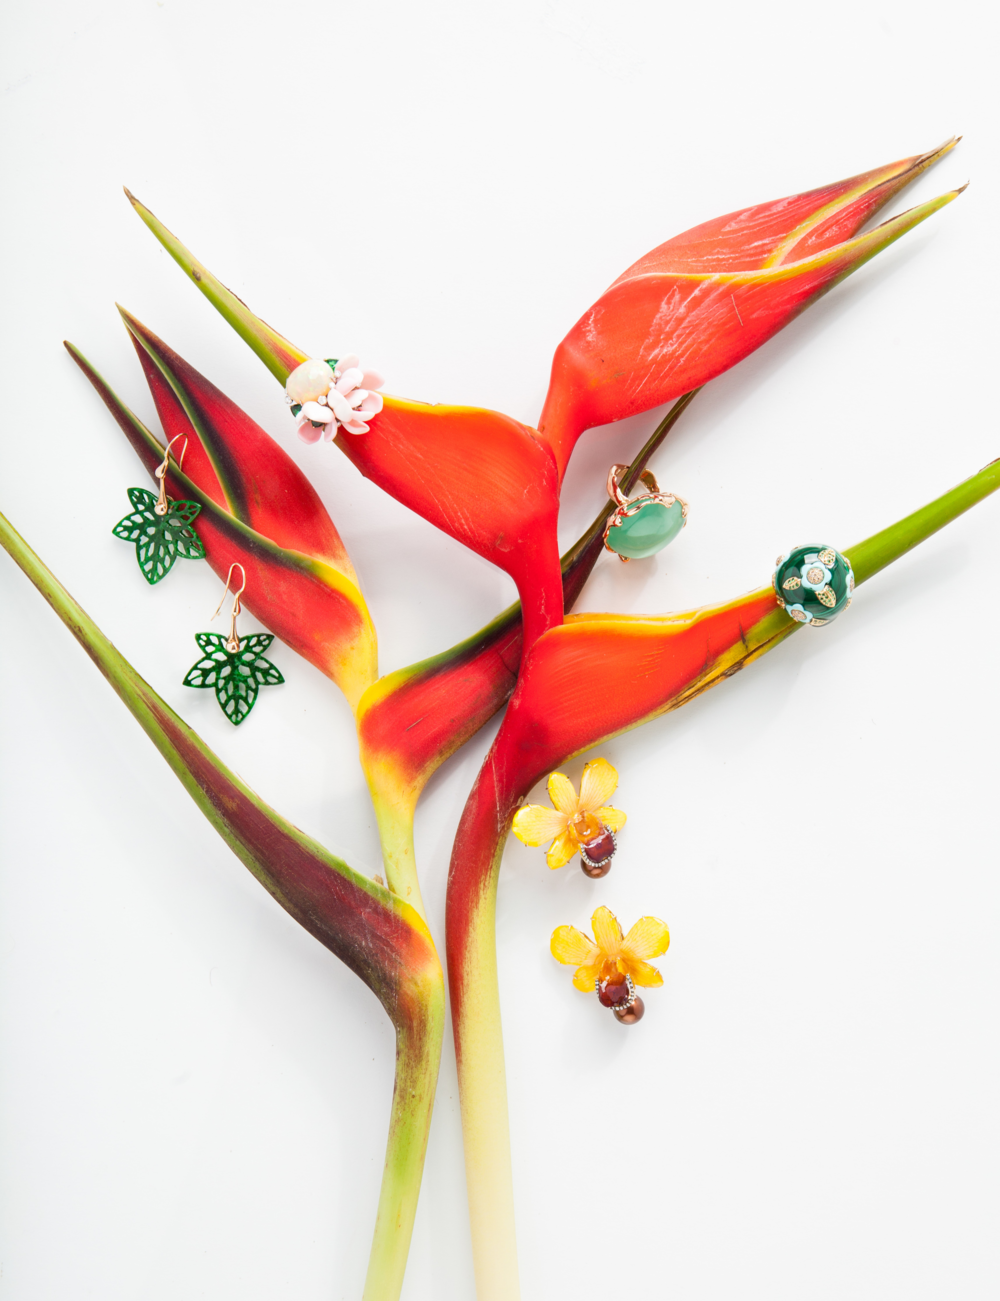 birds_of_paradise_plants_playful_jewelry_naples_illustrated_vanessa_rogers_photography